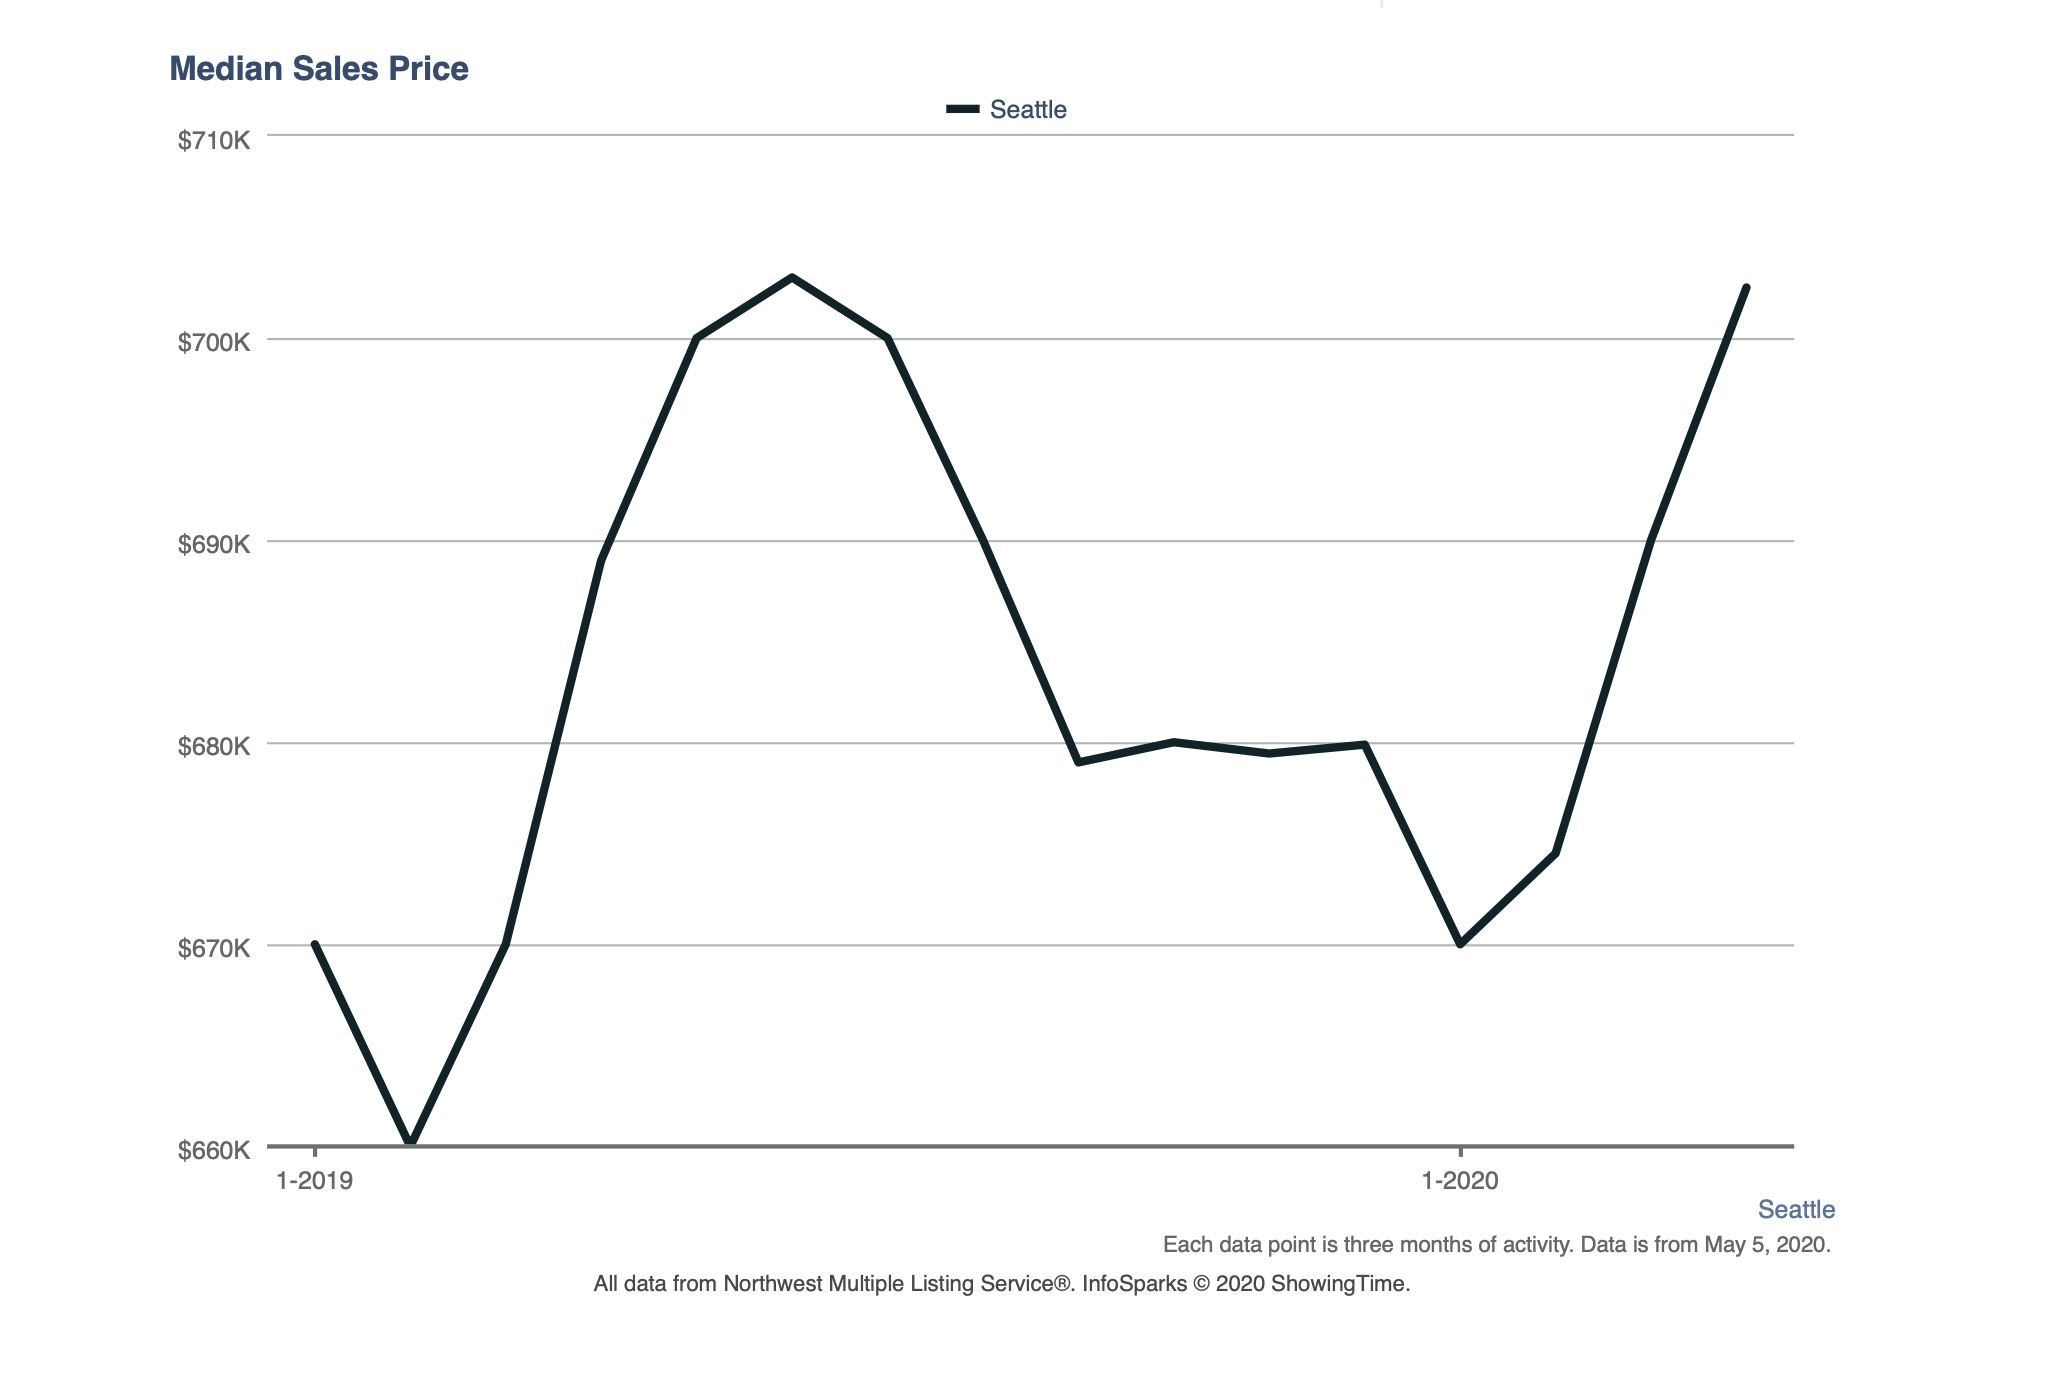 Median Seattle prices from April 2019 to April 2020